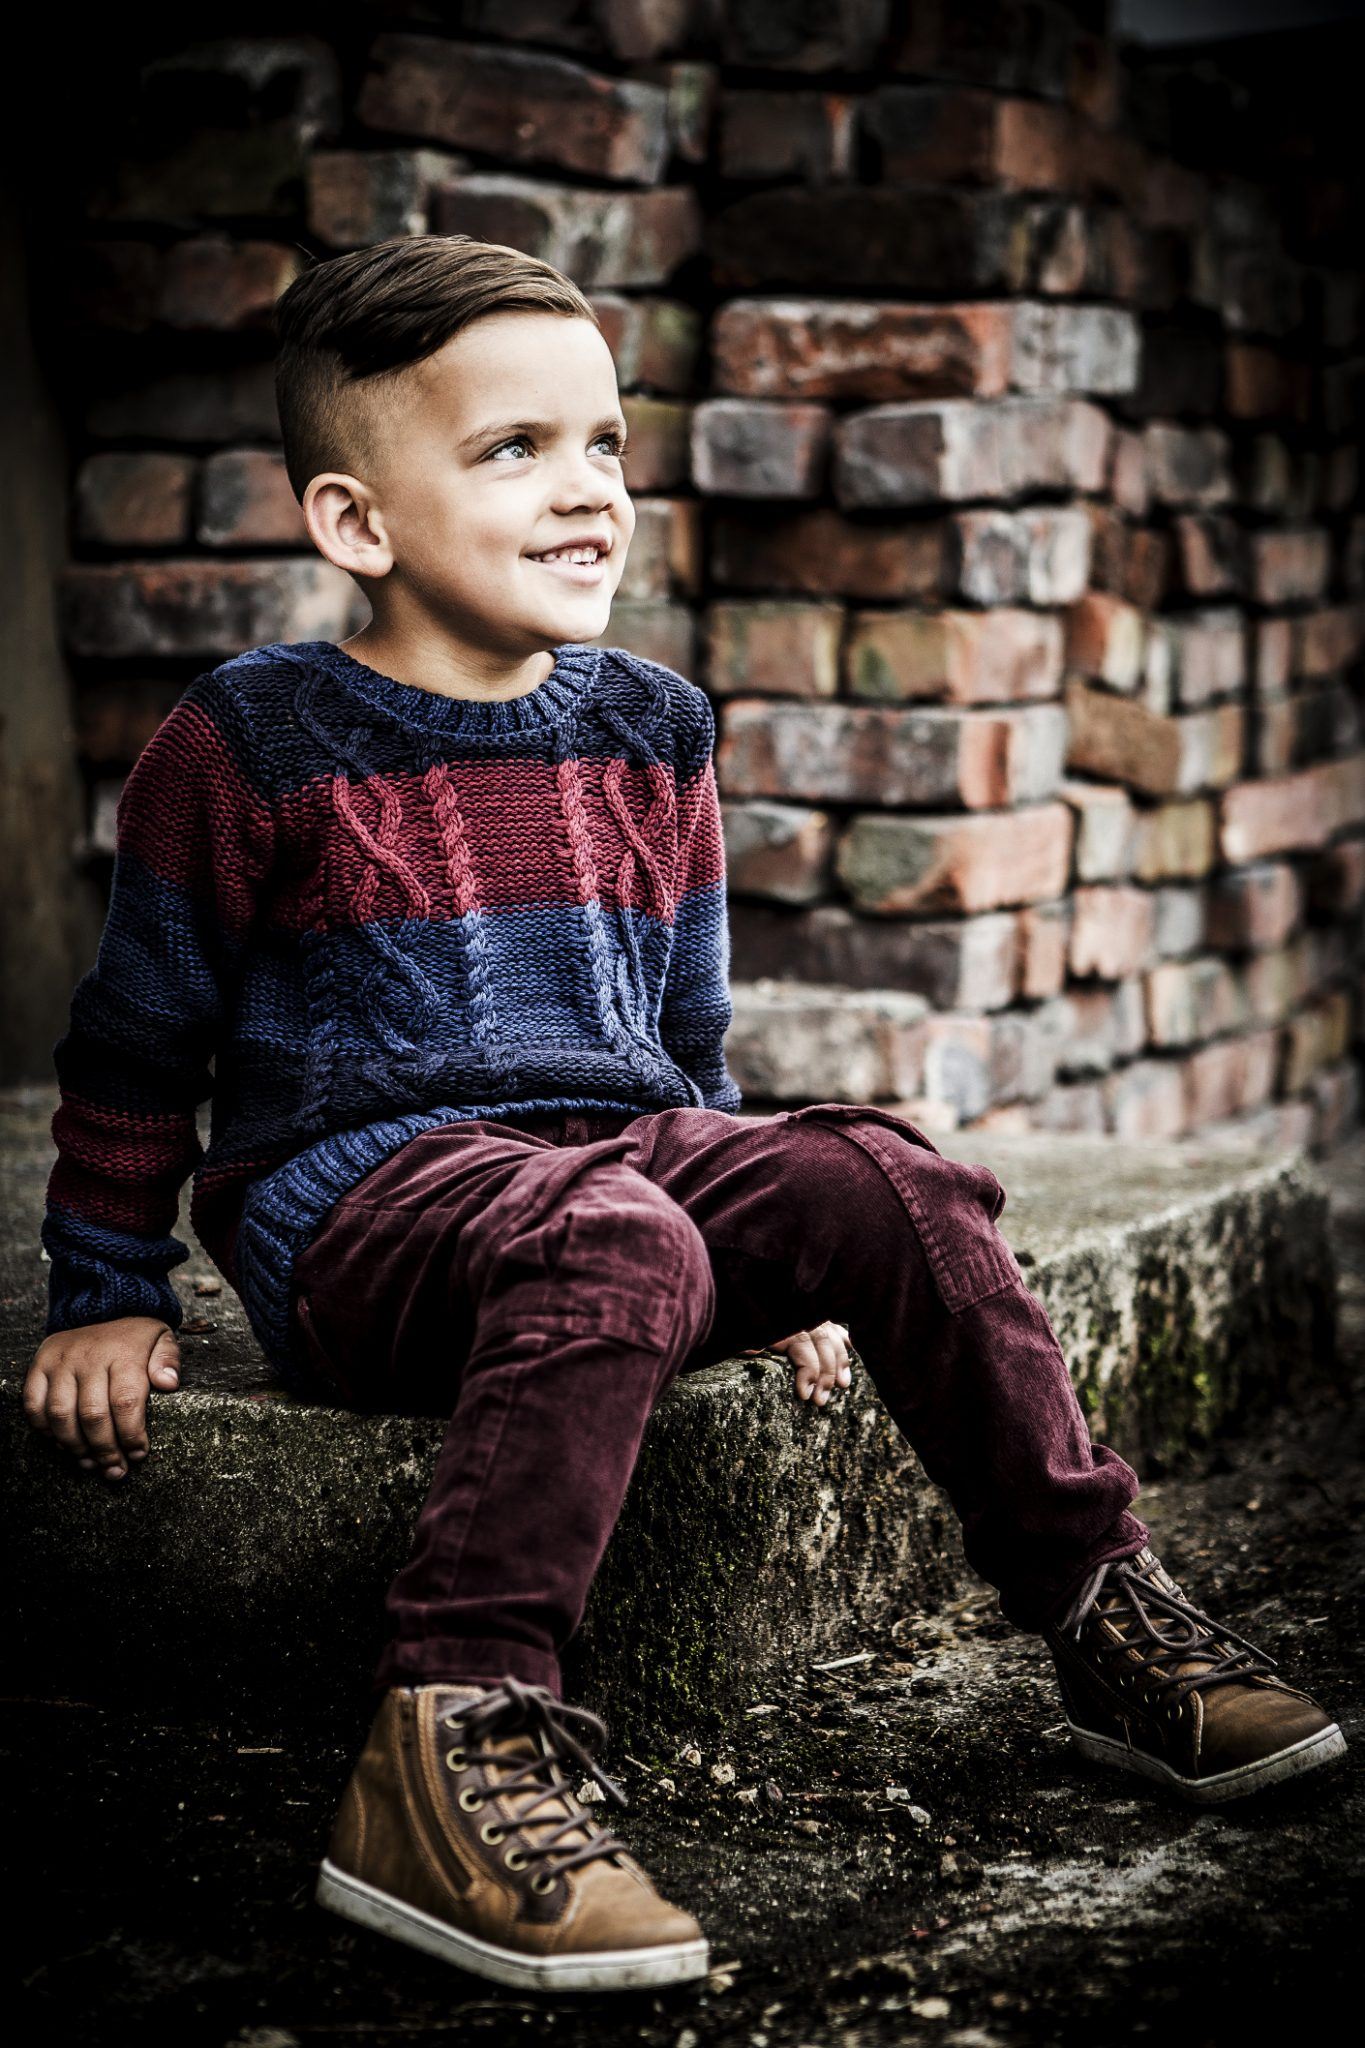 advertising-and-fashion-phtography-for-kidswear-in-manchester